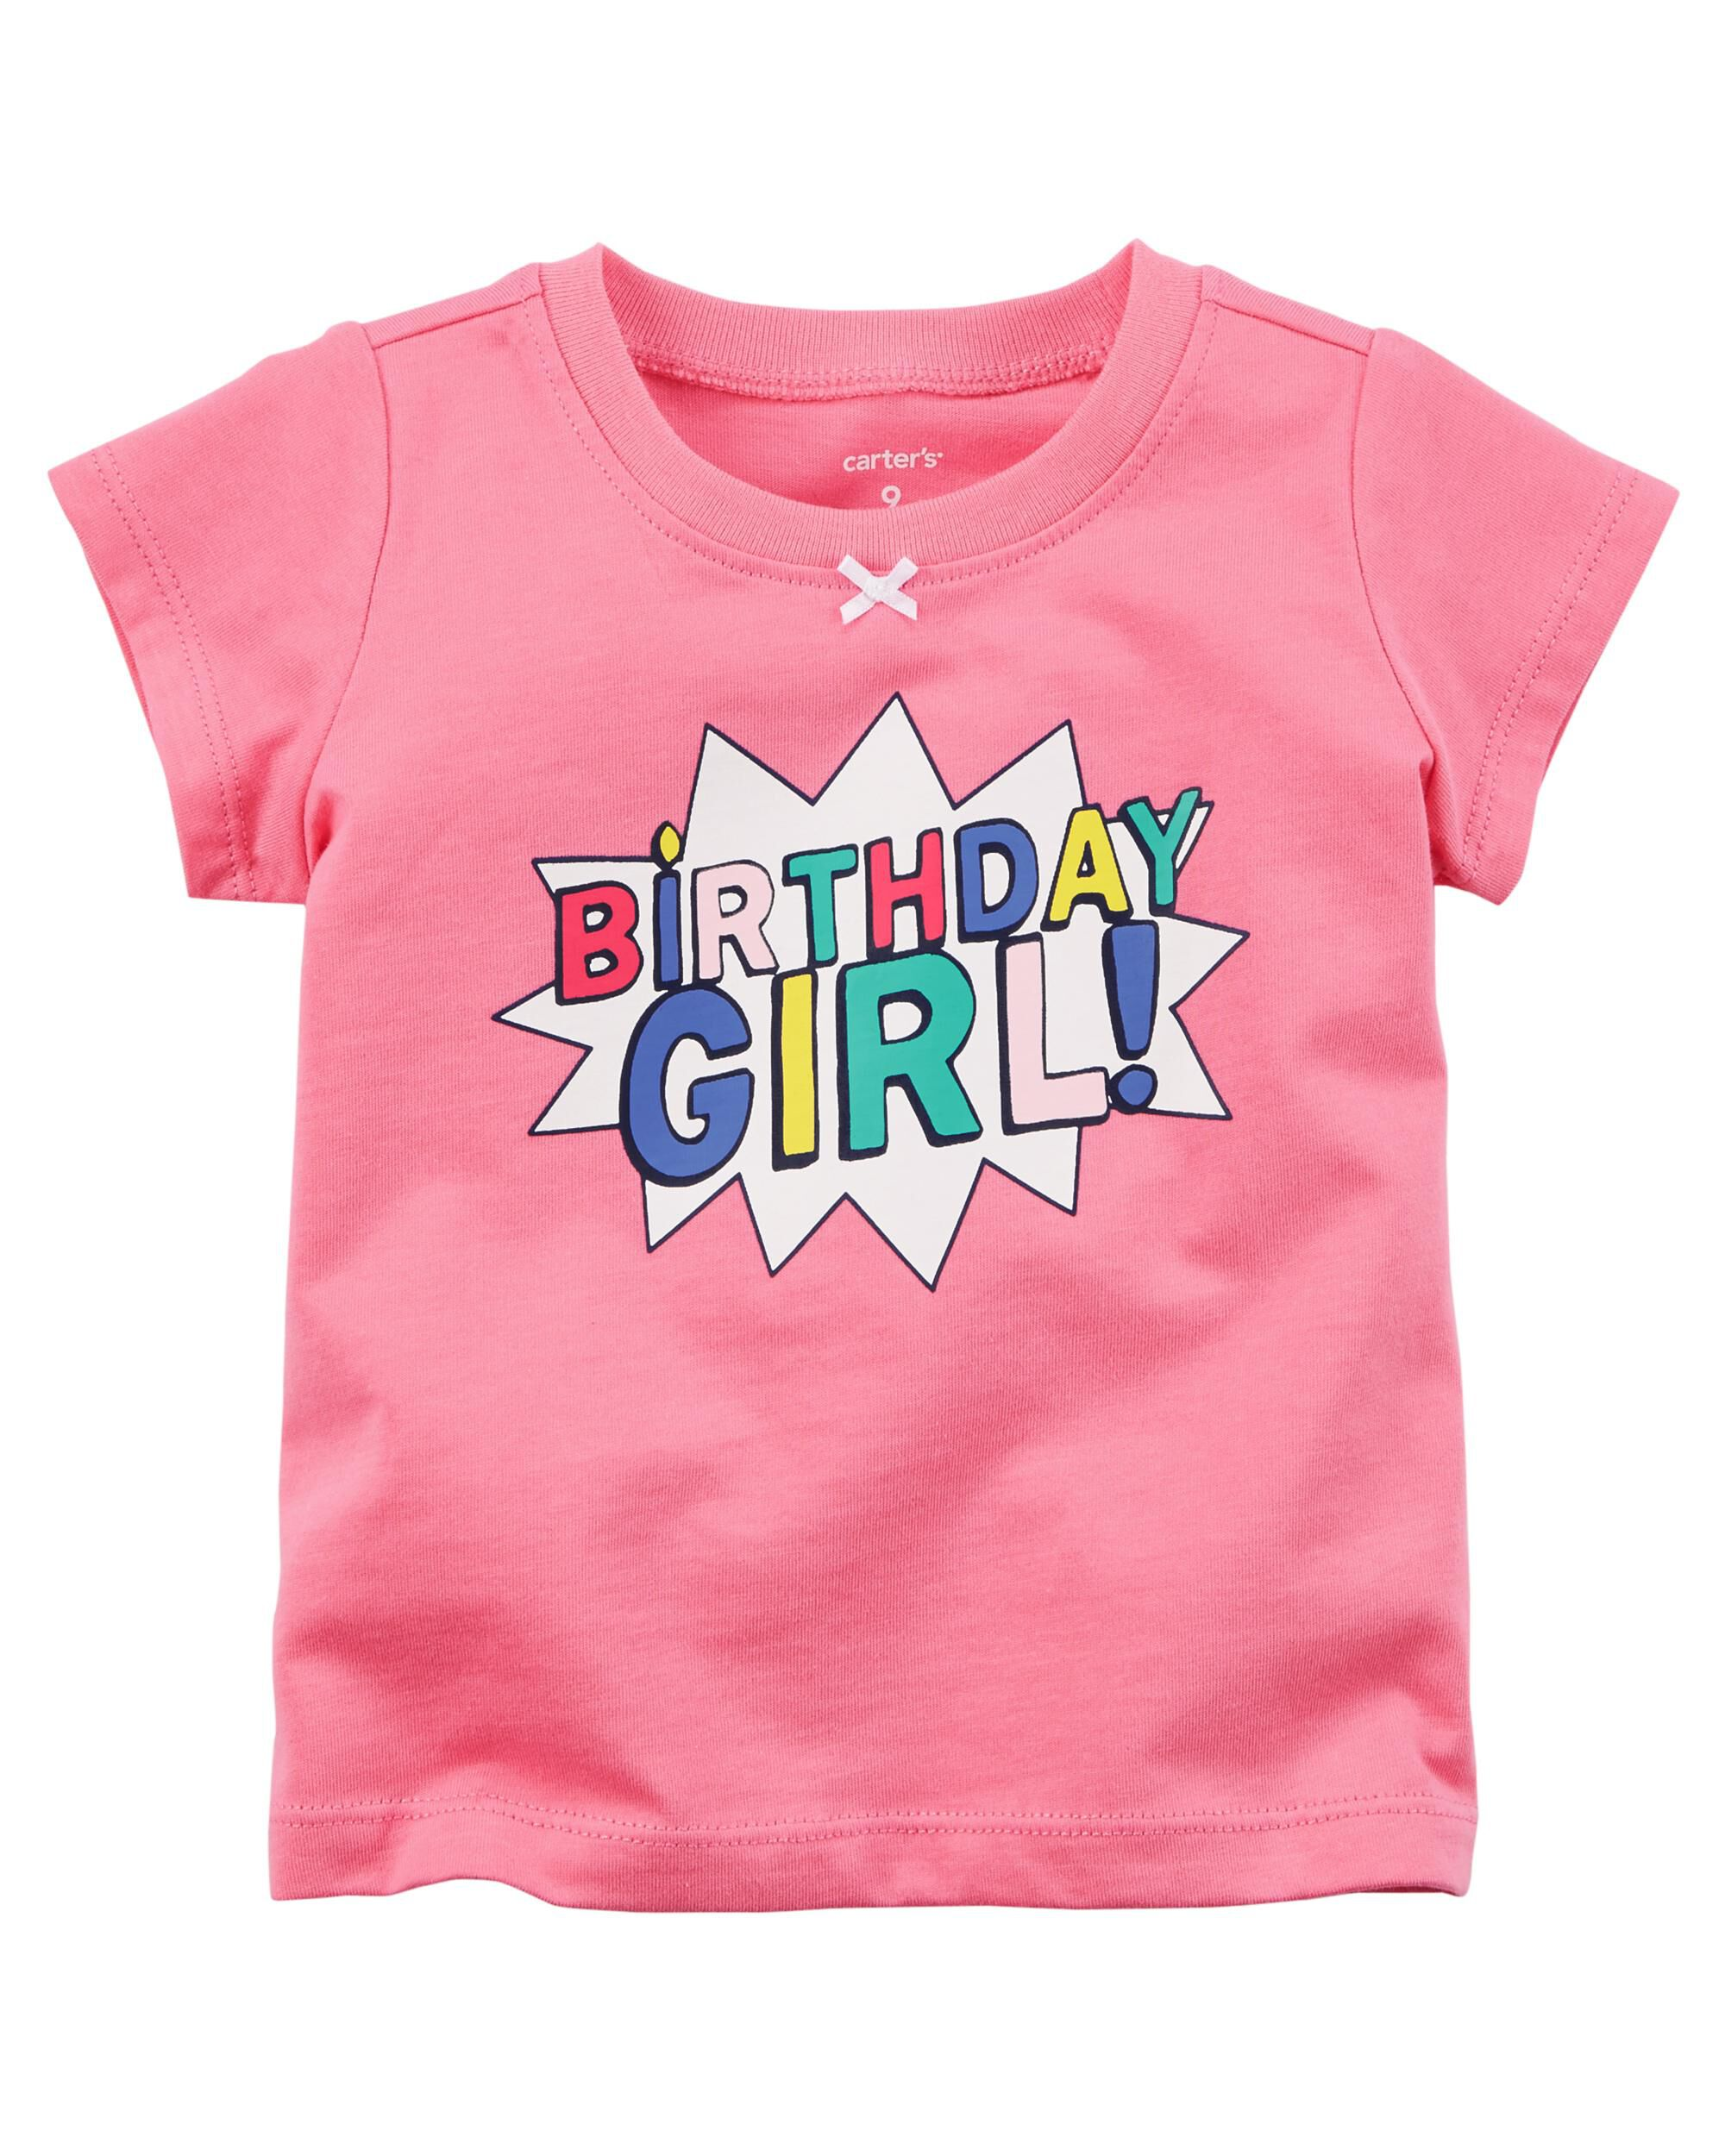 92090512a Birthday Girl Tee